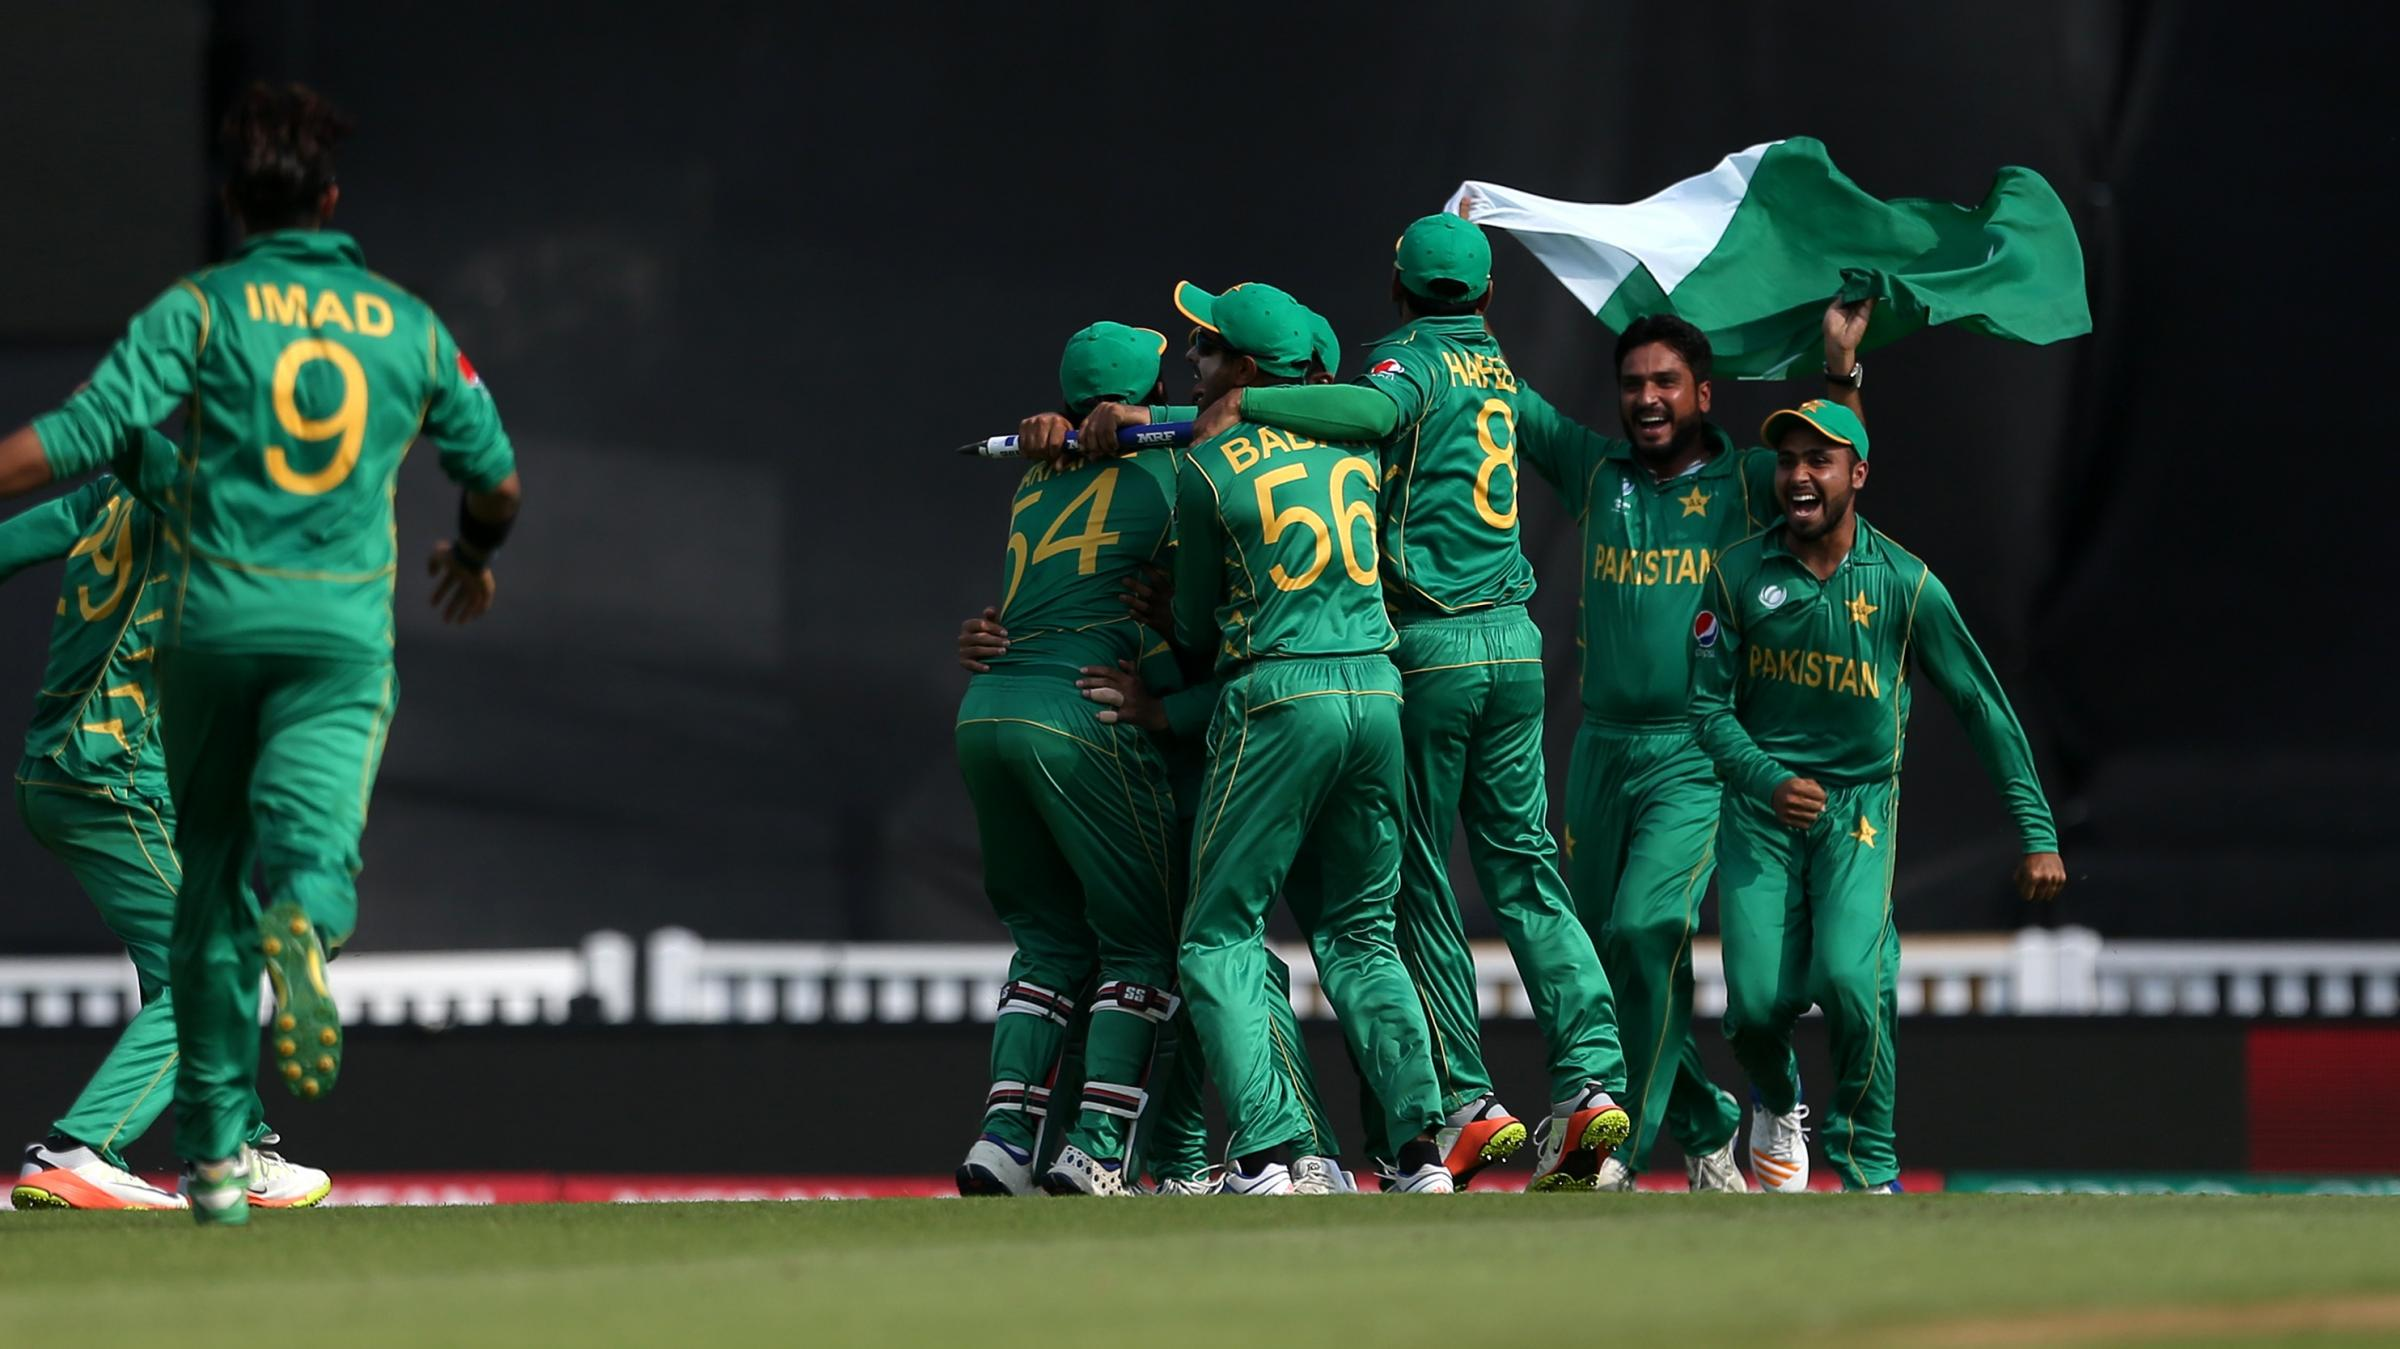 Triumphant Pakistan have core to target further glory